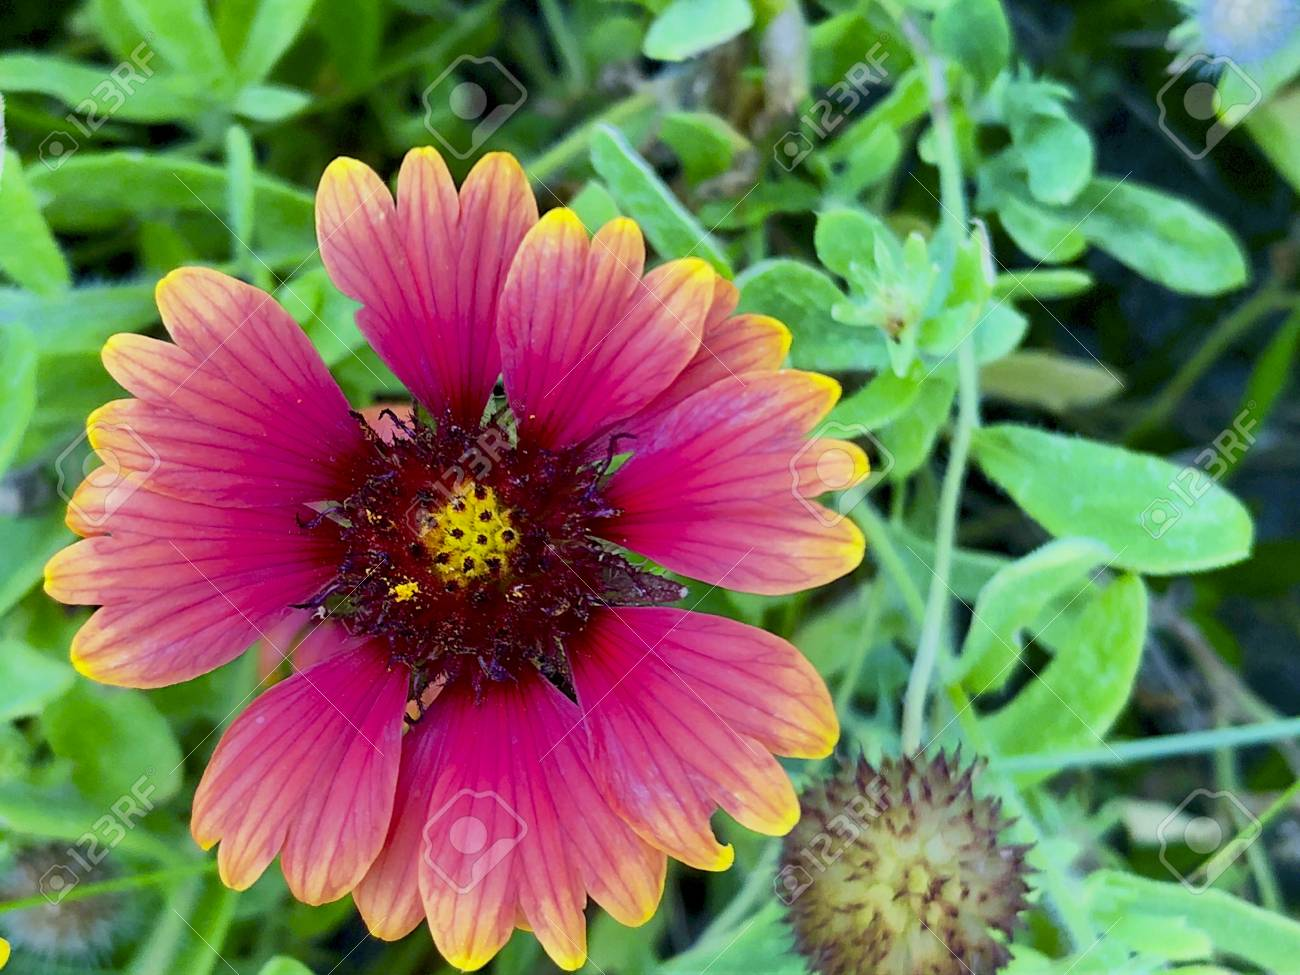 Red Orange And Yellow Sunflower In South Florida By The Beach Stock